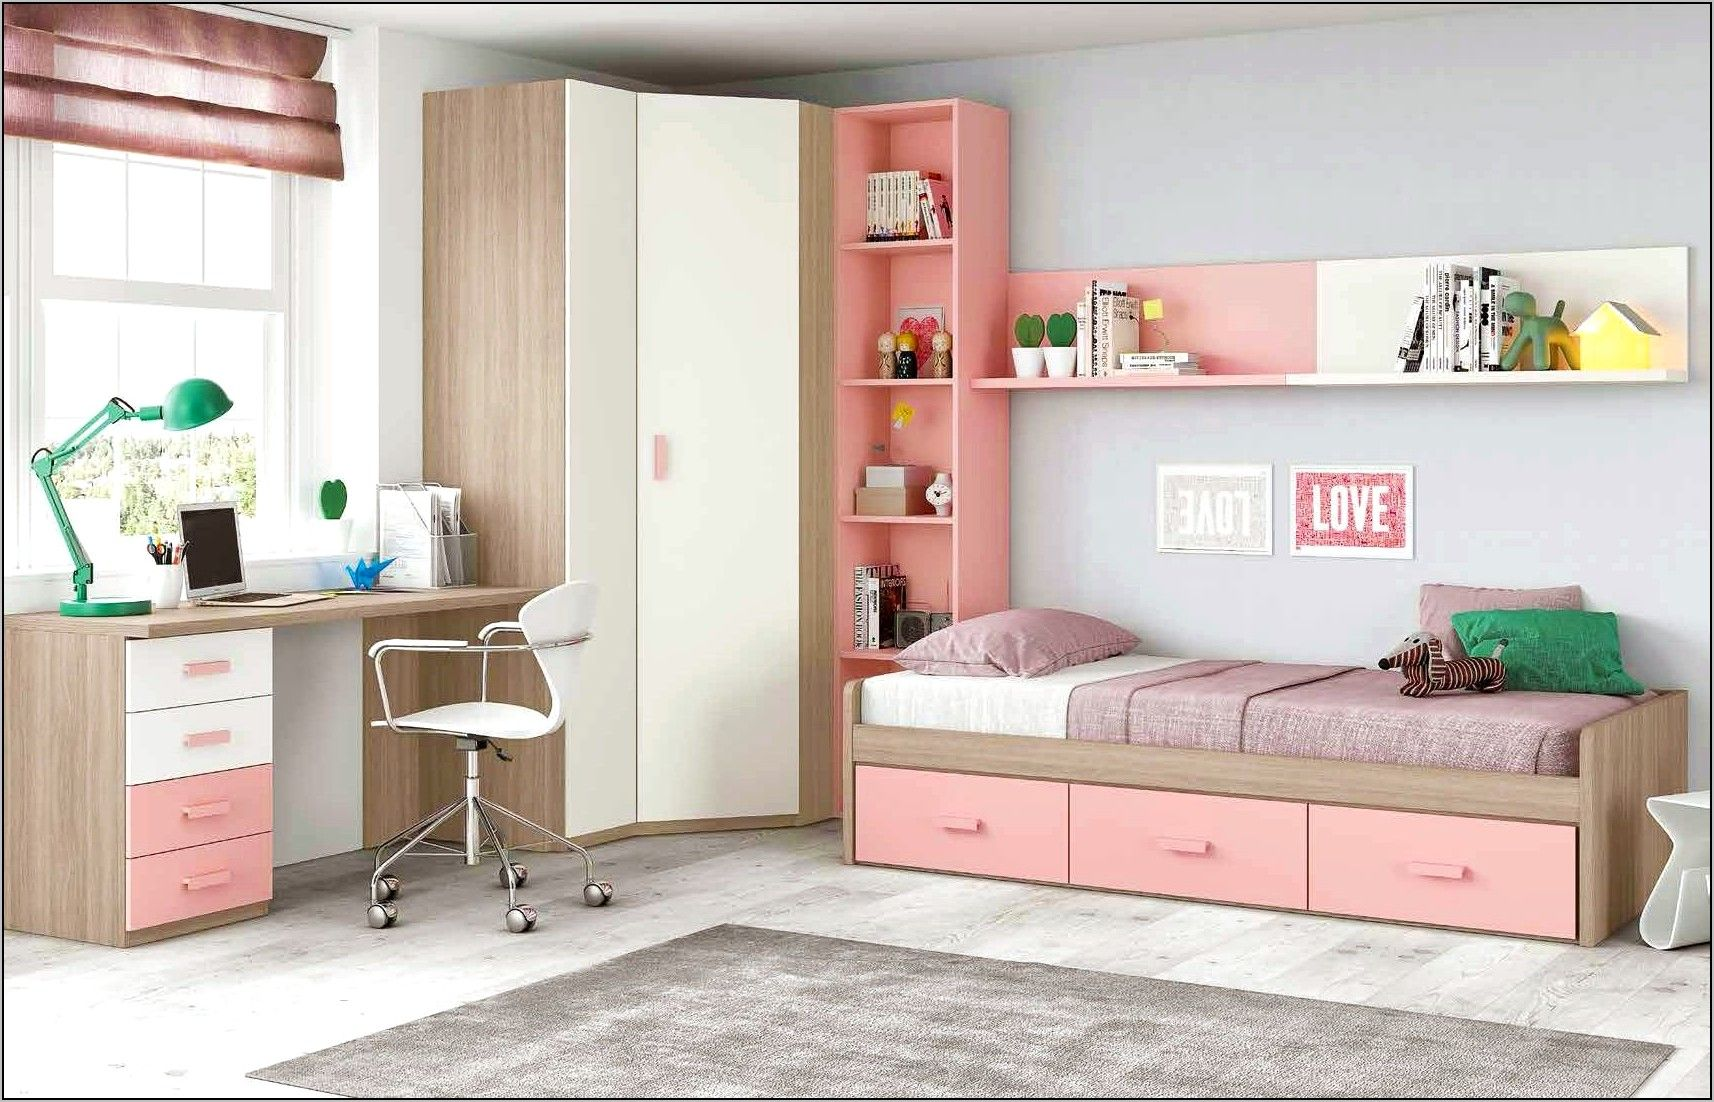 Deco Chambre Ado Fille 16 à 16 Ans Ikea in 16  Home decor